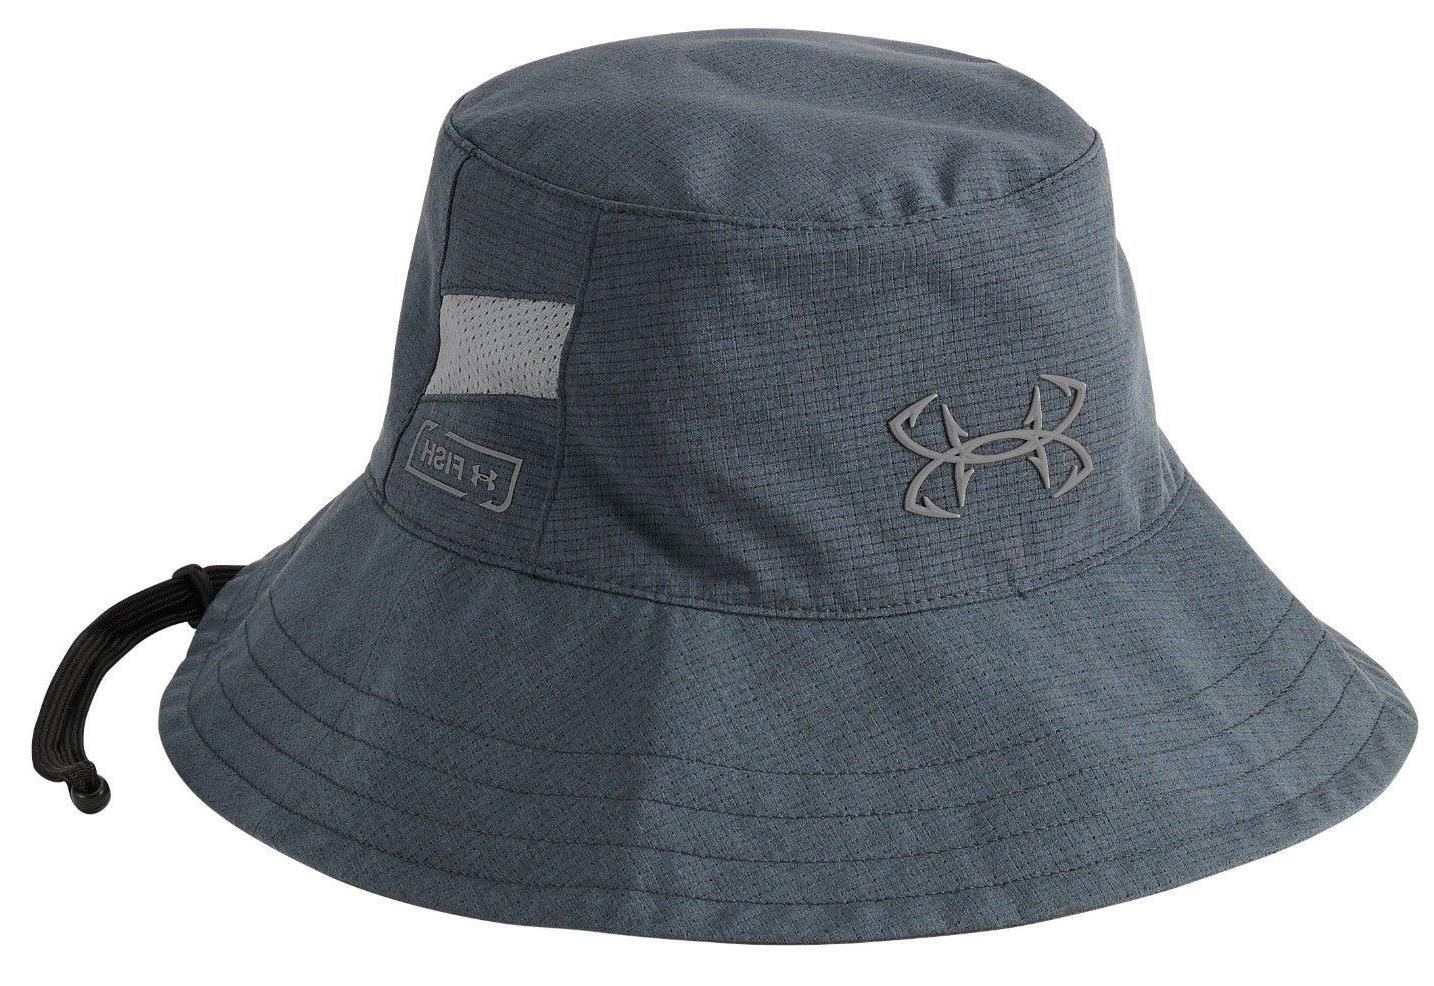 eb9b6750b99 Under Armour UA ArmourVent™ Coolswtich T... By Under Armour. USD  25.00. Under  Armour 1219730 Black Men s Tactical Bucket Hat OSFA